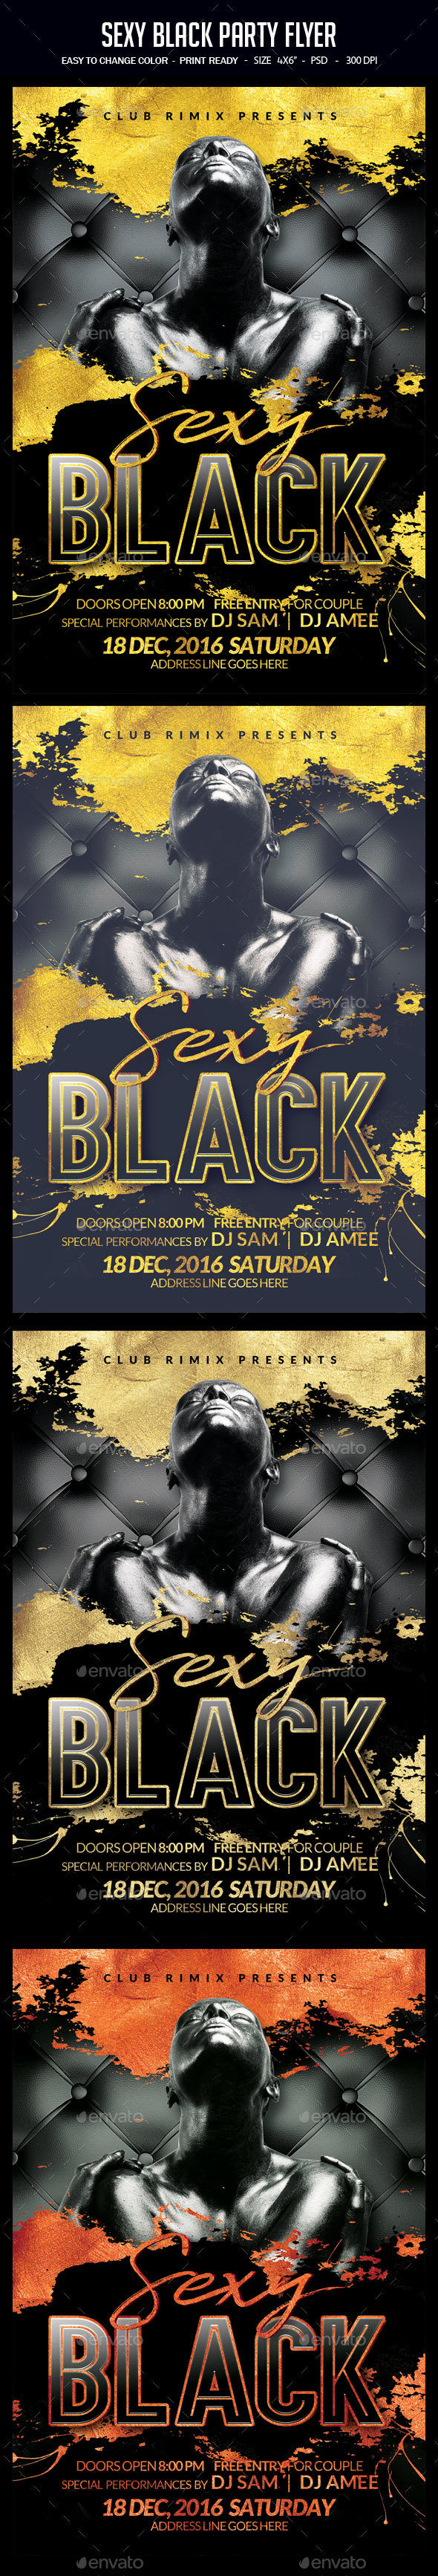 Sexy Black Party Flyer